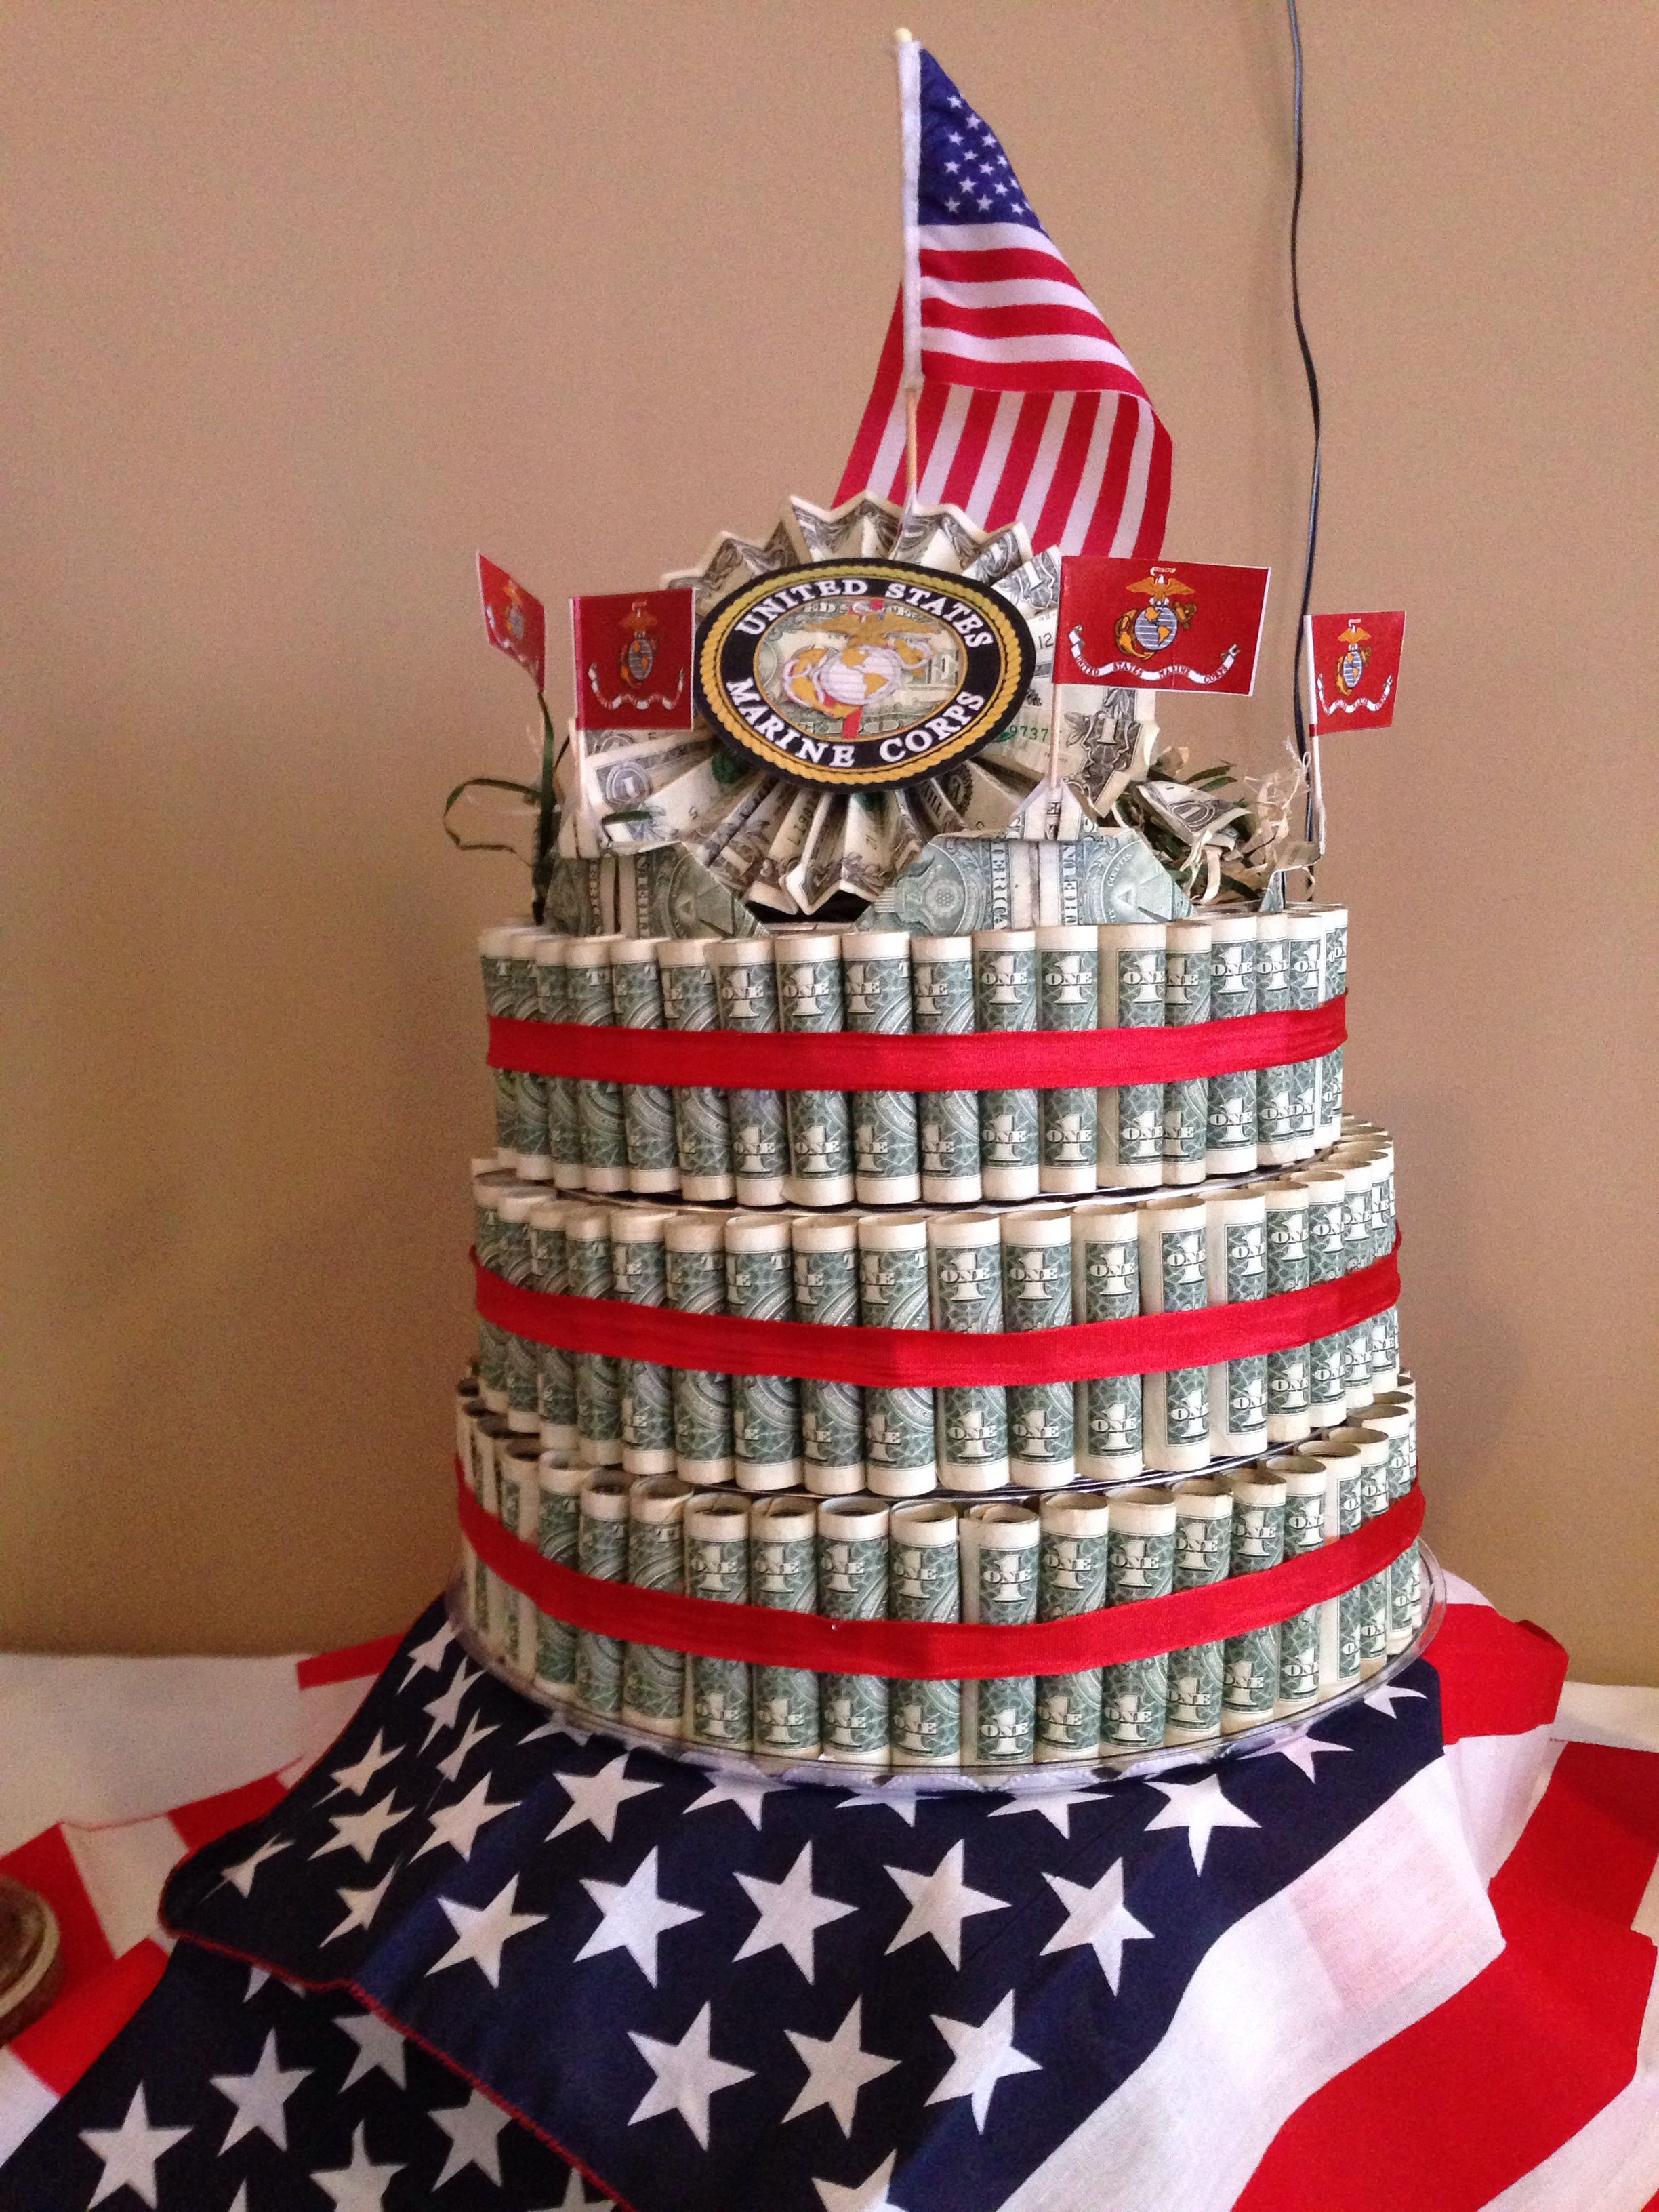 Best ideas about Military Graduation Gift Ideas . Save or Pin Marine Graduation Boot Camp Cake Now.